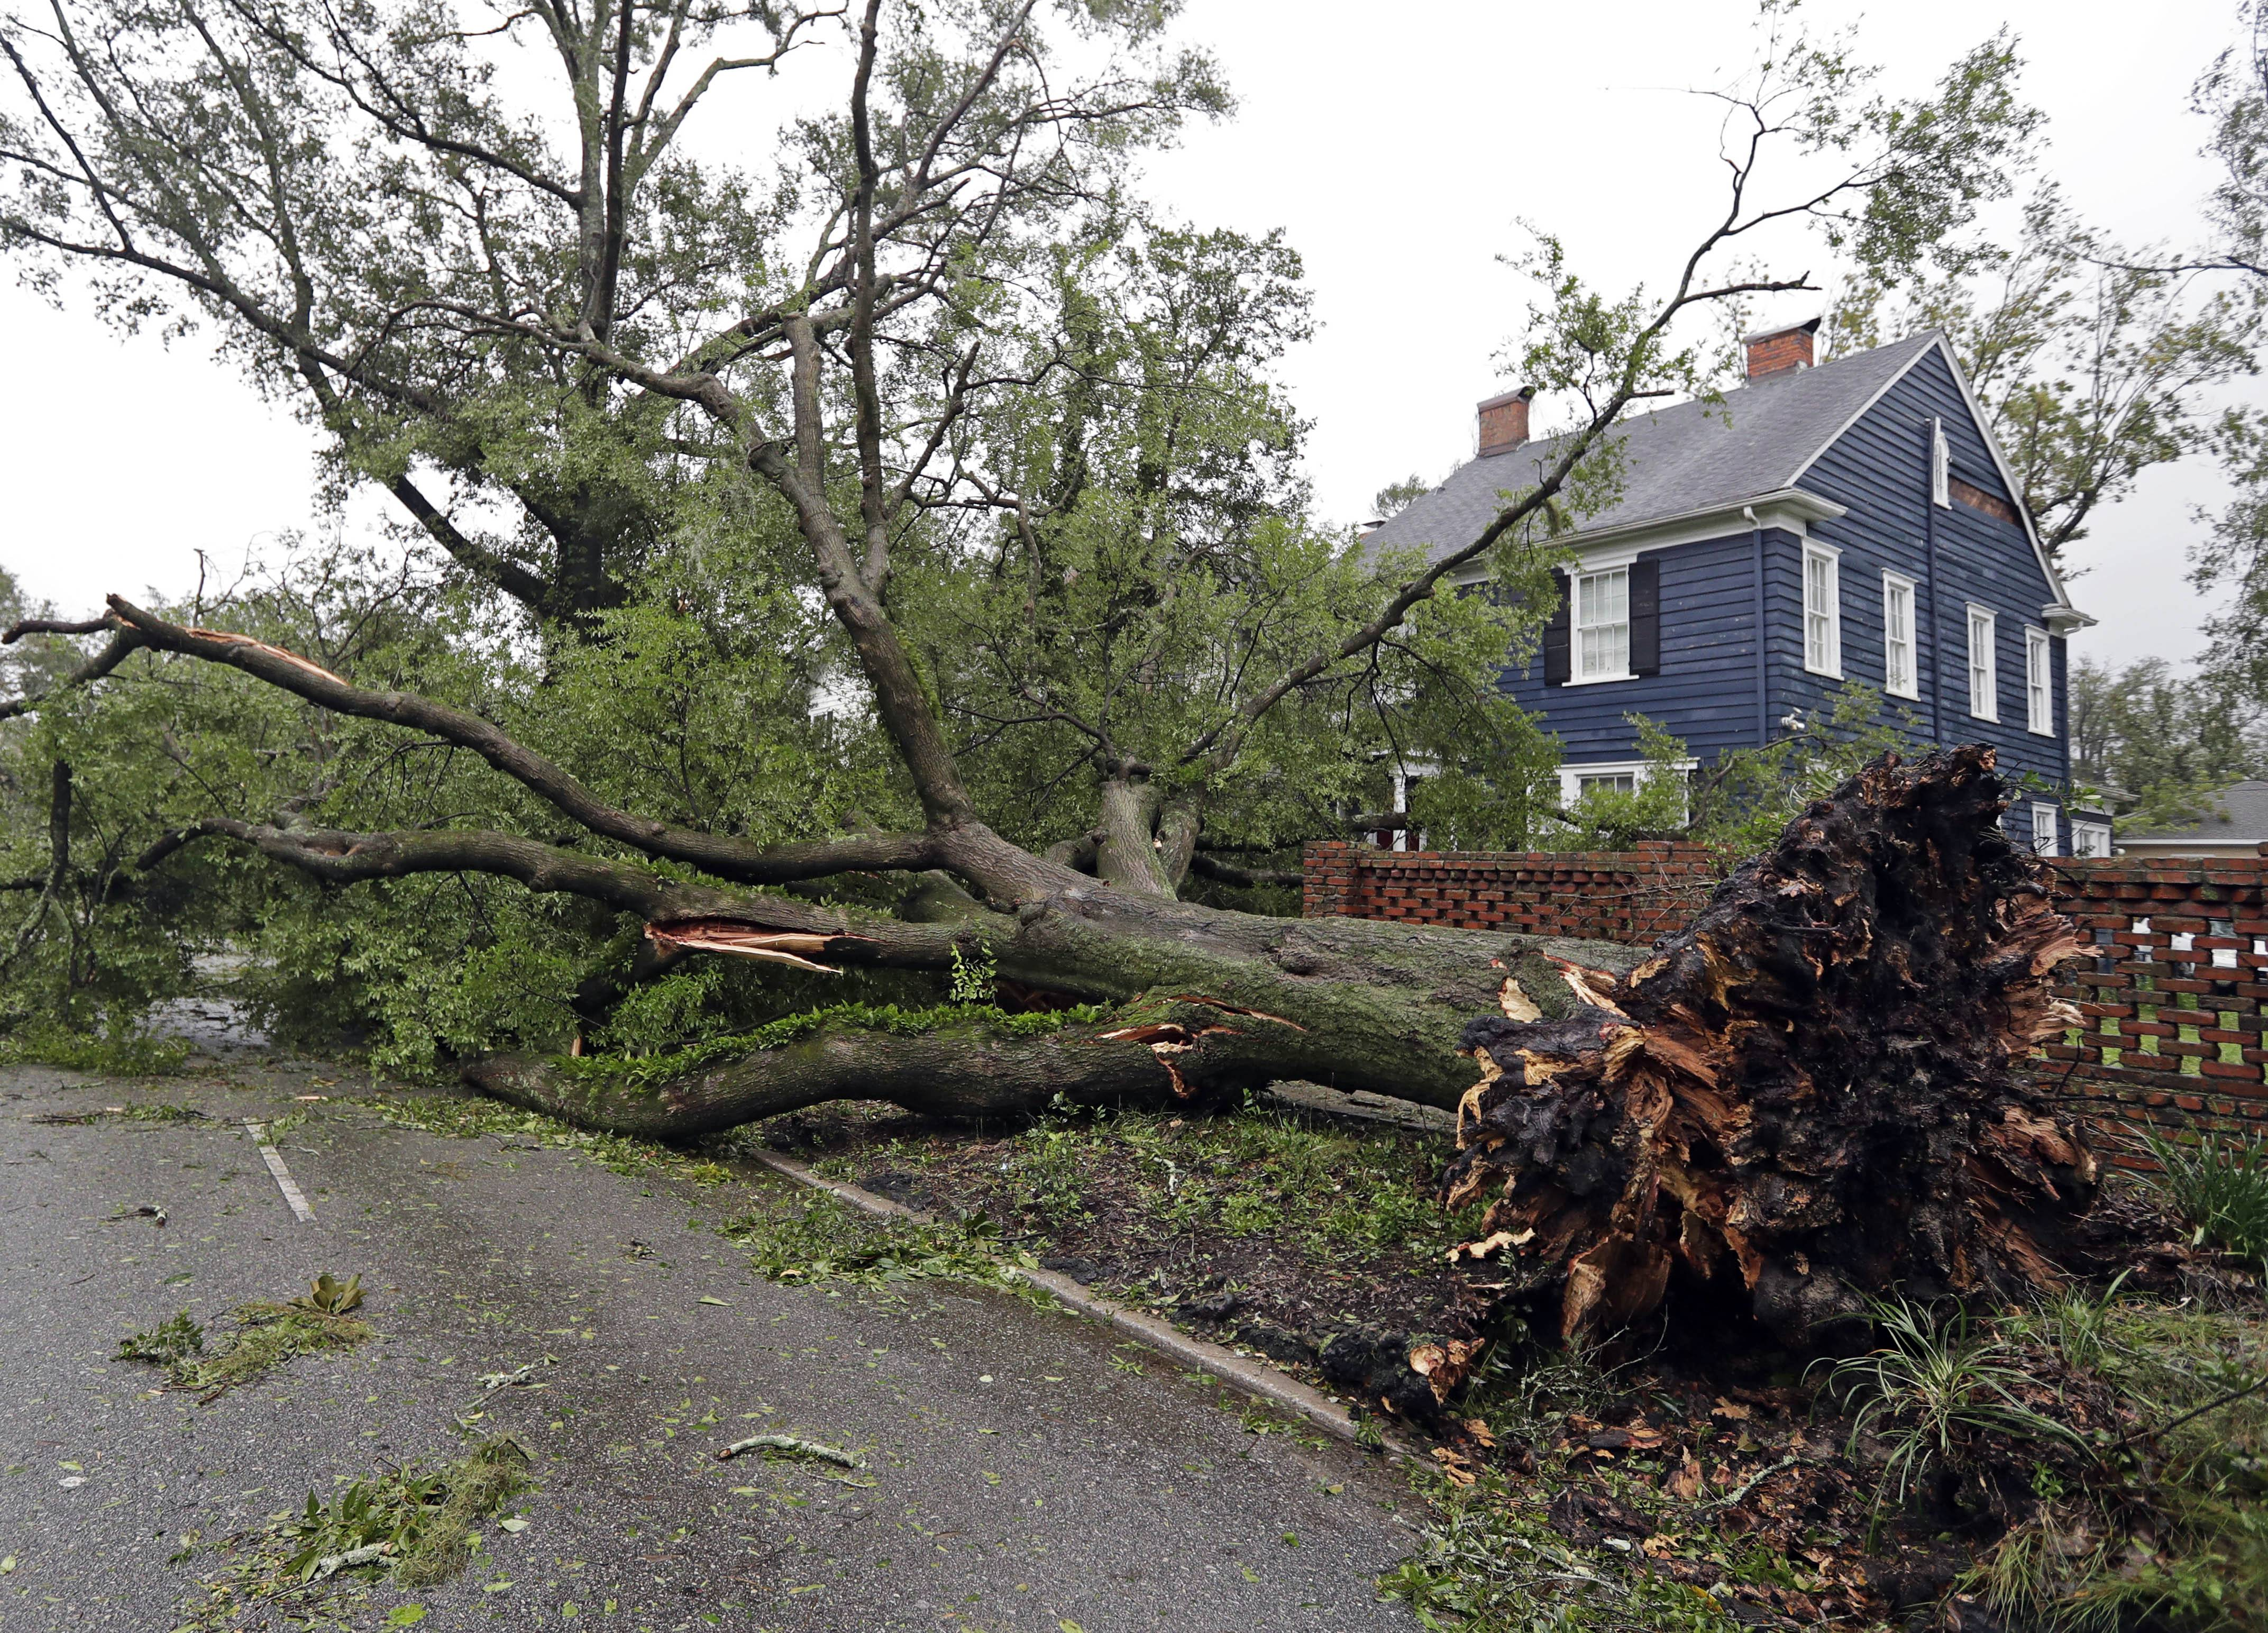 A tree uprooted by strong winds lies across a street in Wilmington, N.C., after Hurricane Florence made landfall Friday, Sept. 14, 2018.